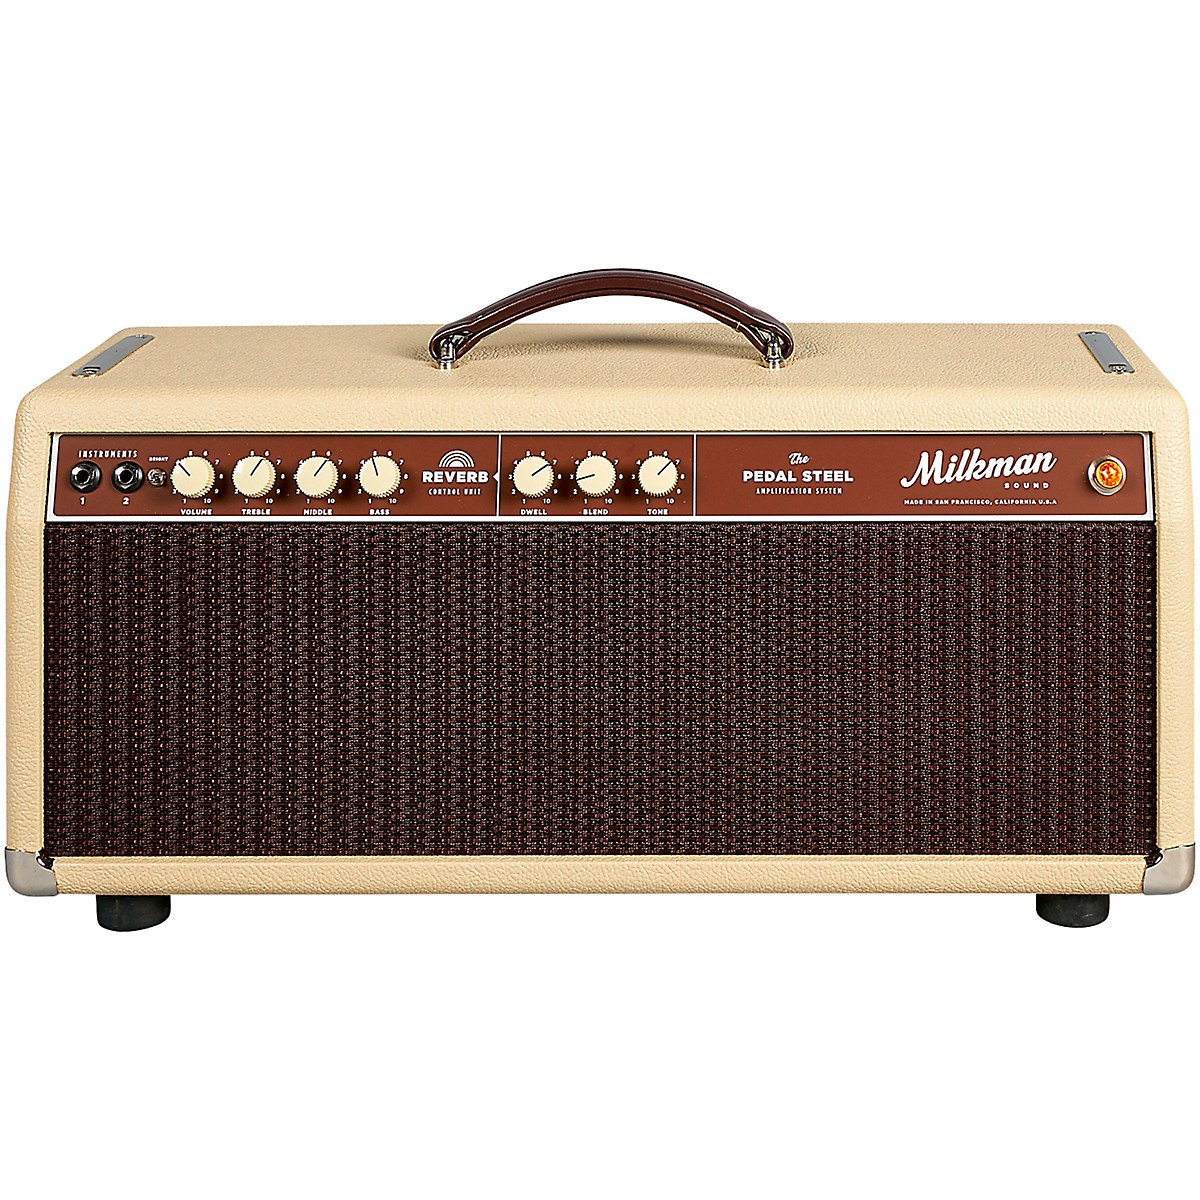 Milkman Sound 85W Pedal Steel 85W Tube Guitar Amp Head